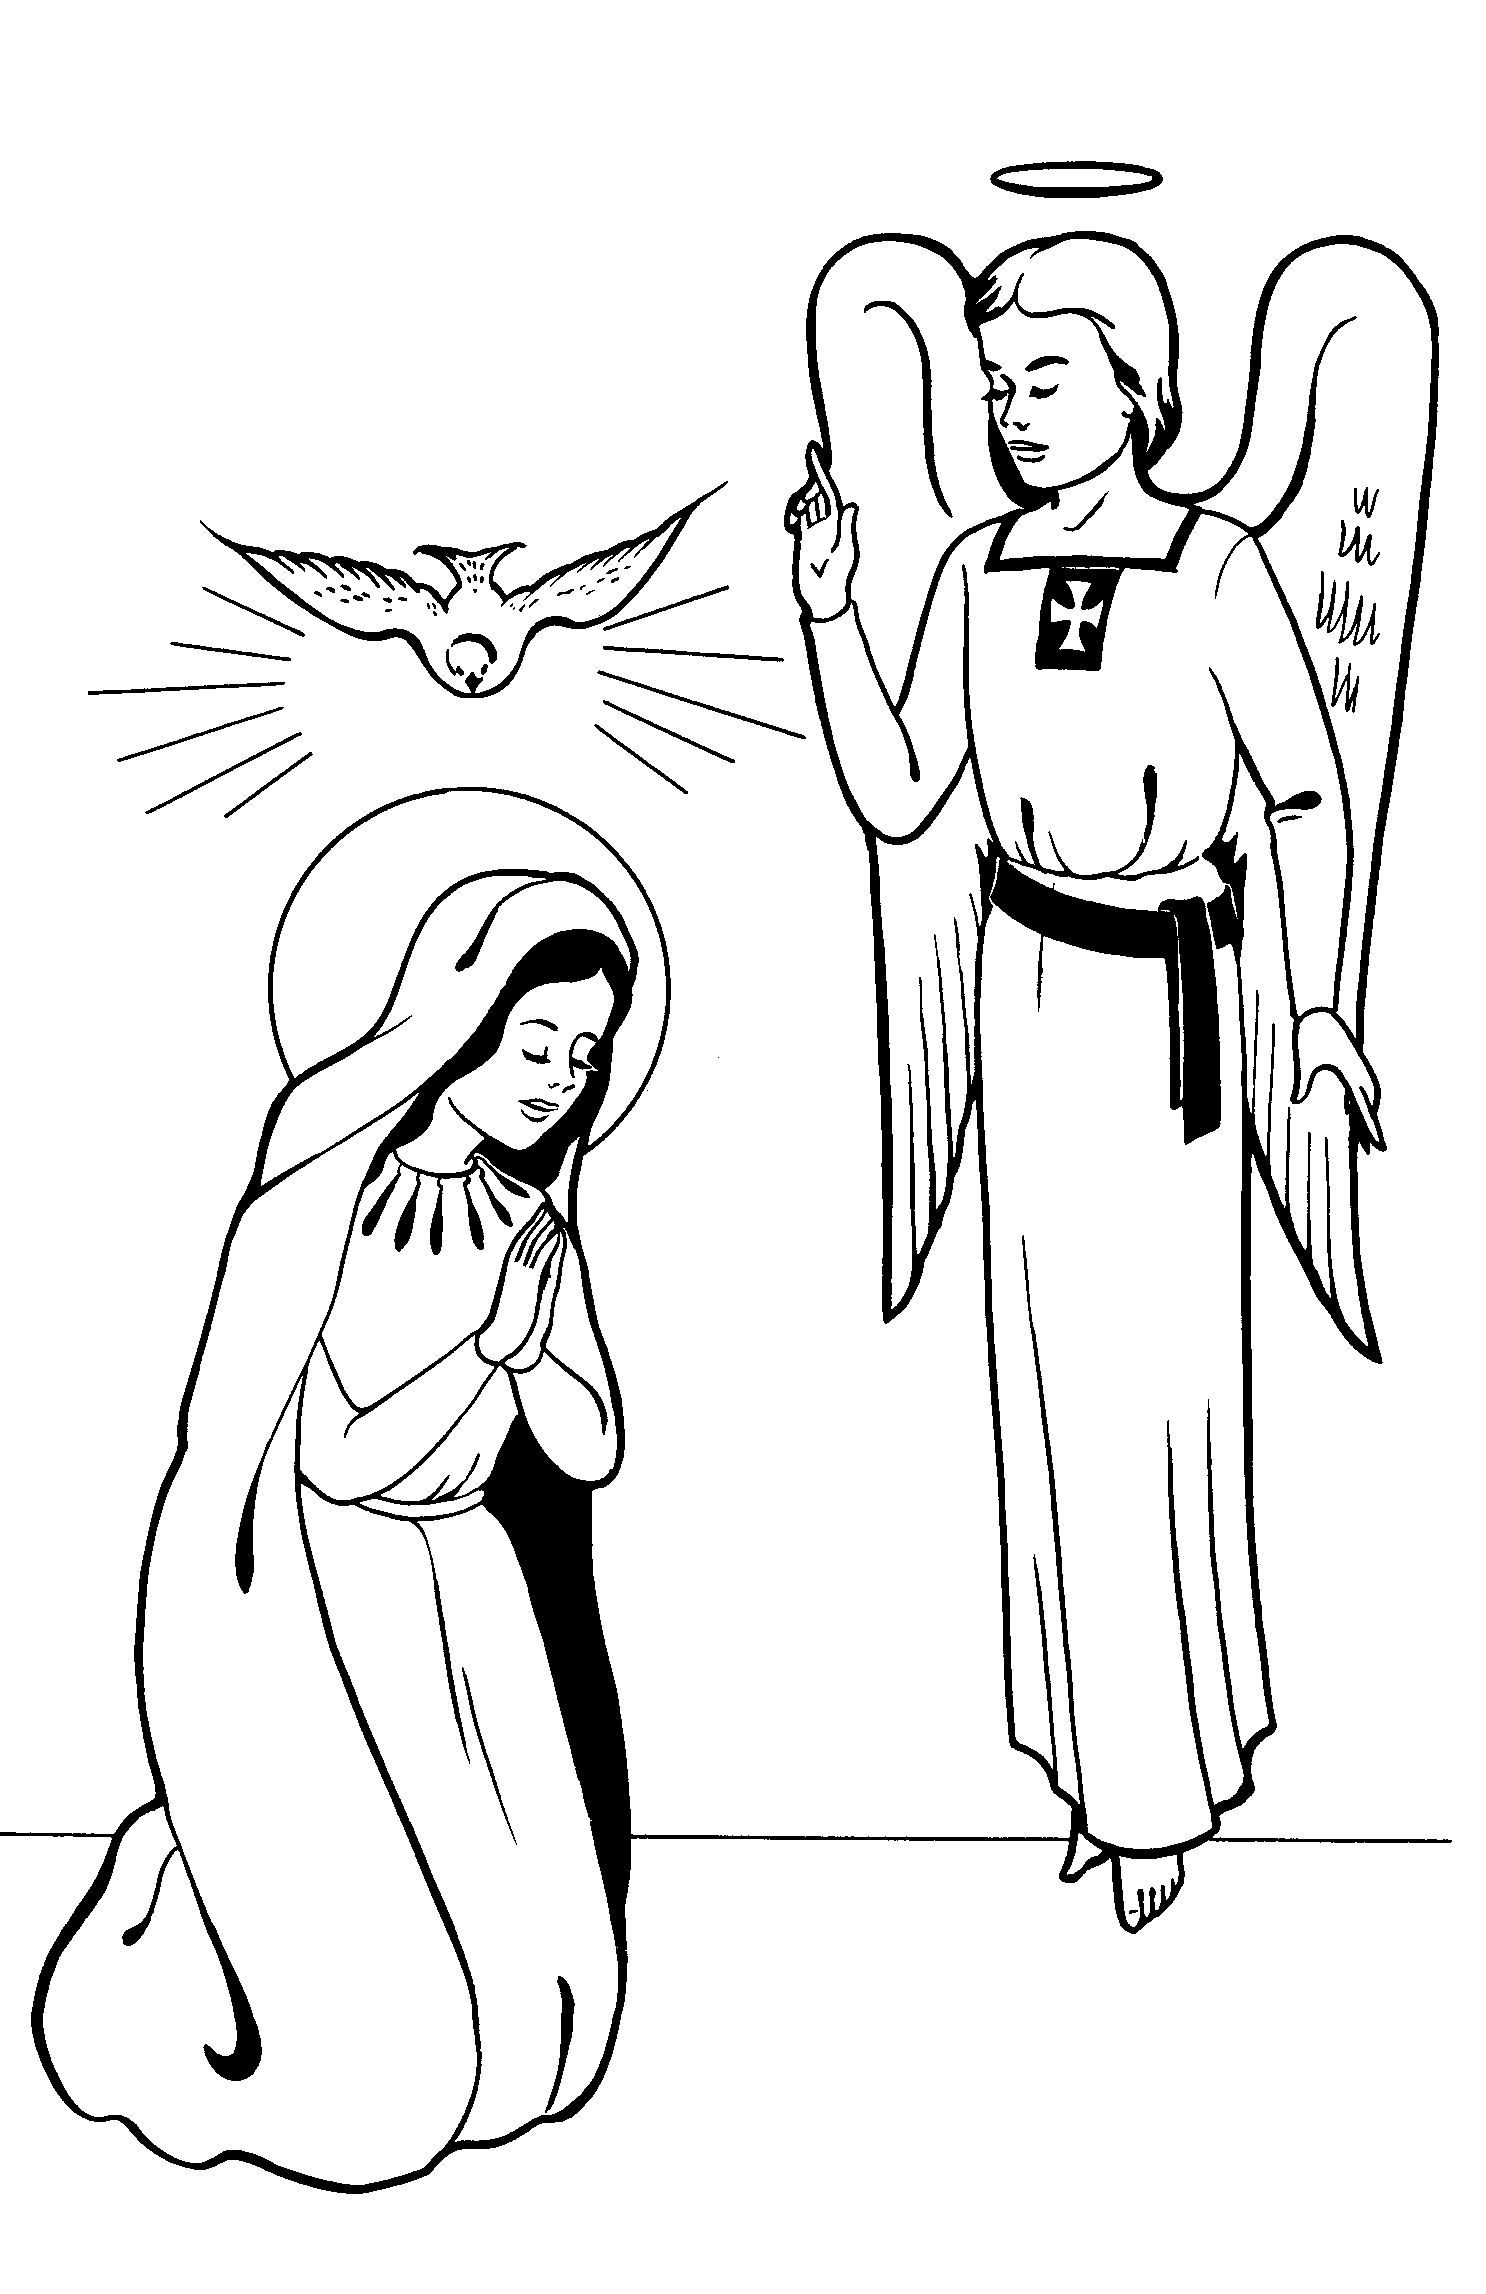 mary coloring pages 20 best mary coloring pages images on pinterest catholic coloring mary pages